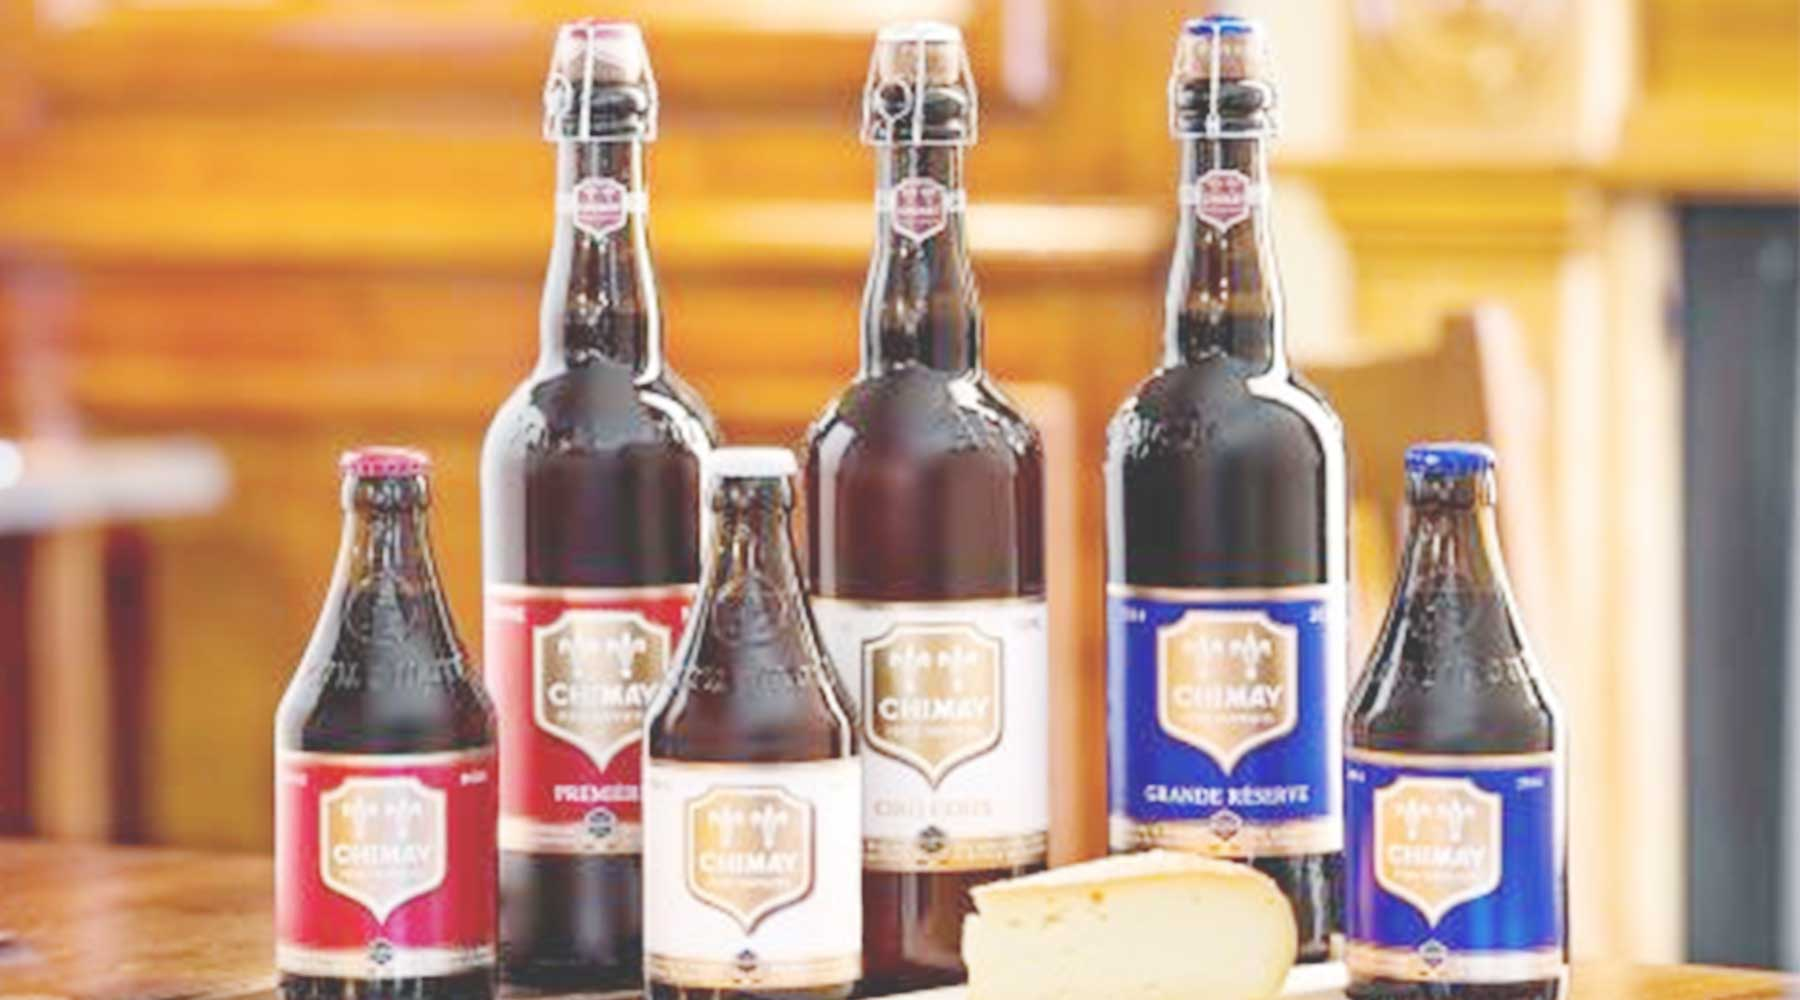 Bieres et Fromages De Chimay | Just Wine